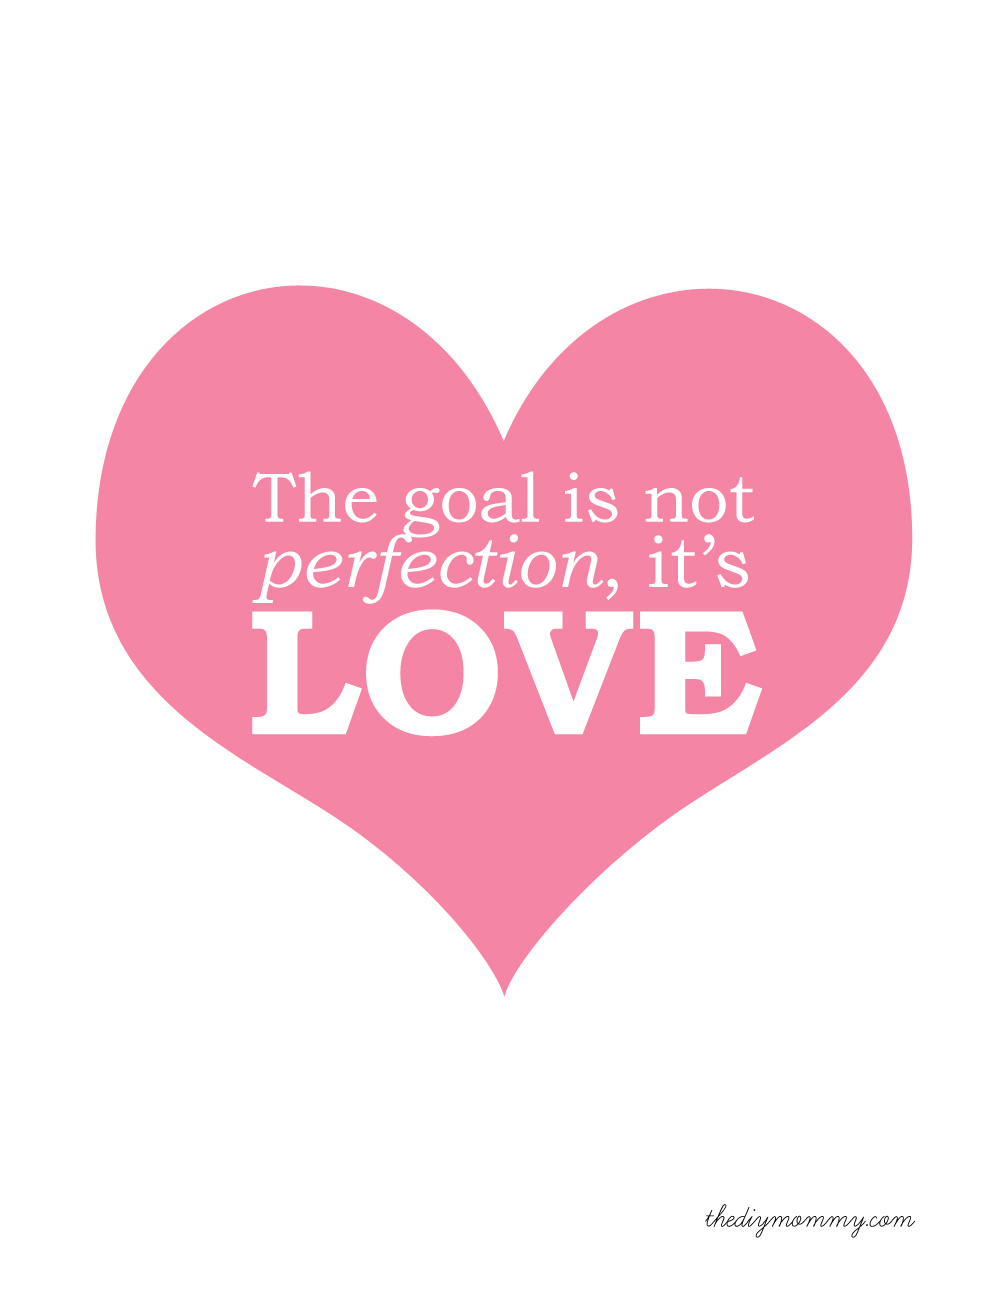 The Goal is Love - Free Printable by The DIY Mommy